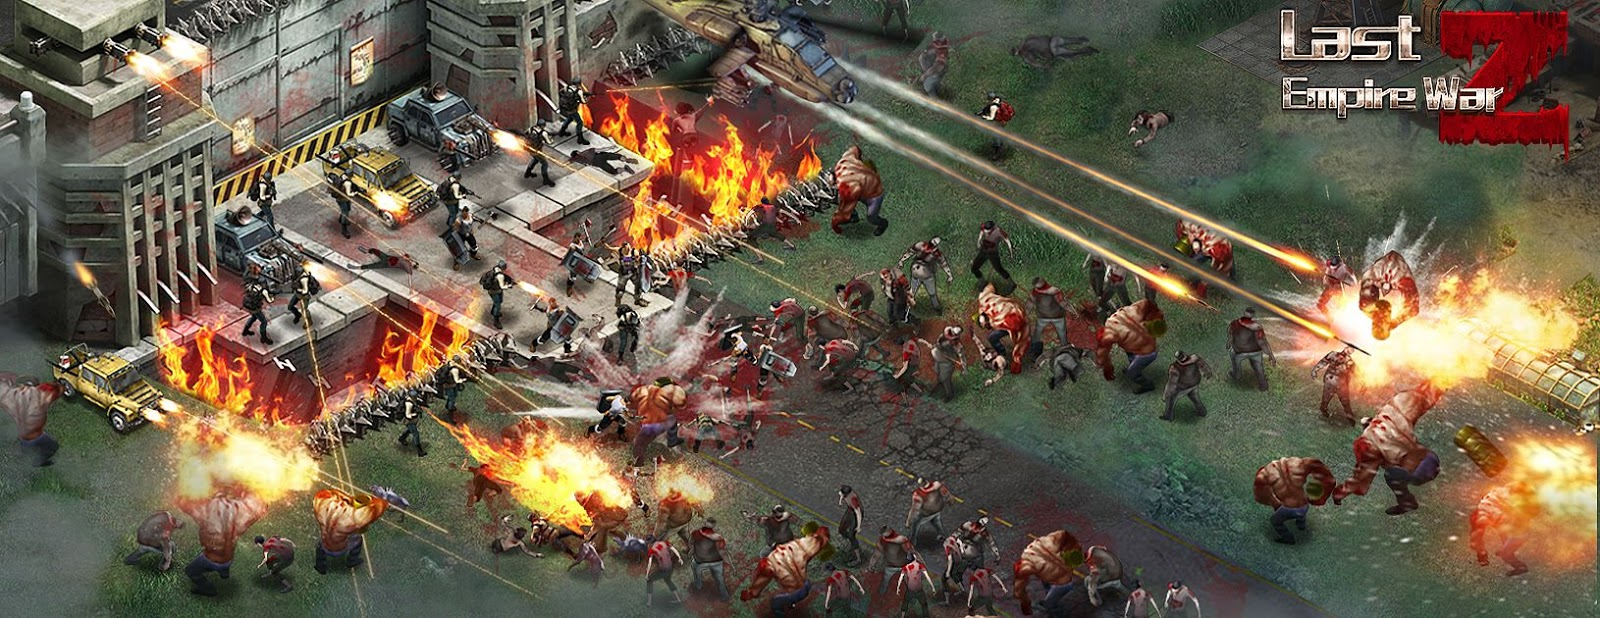 Masterfully hammering zombies on iPhone and iPad